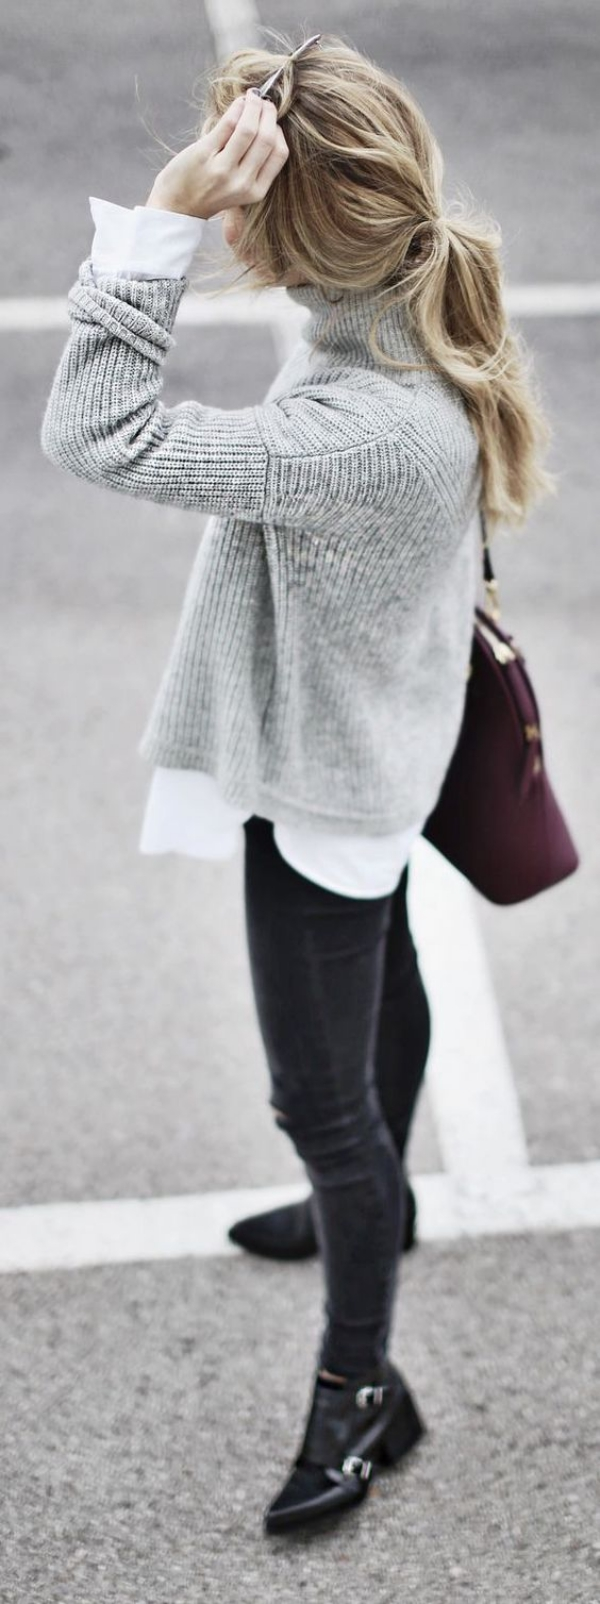 Autumn-Fashion-Outfits-Ideas-22